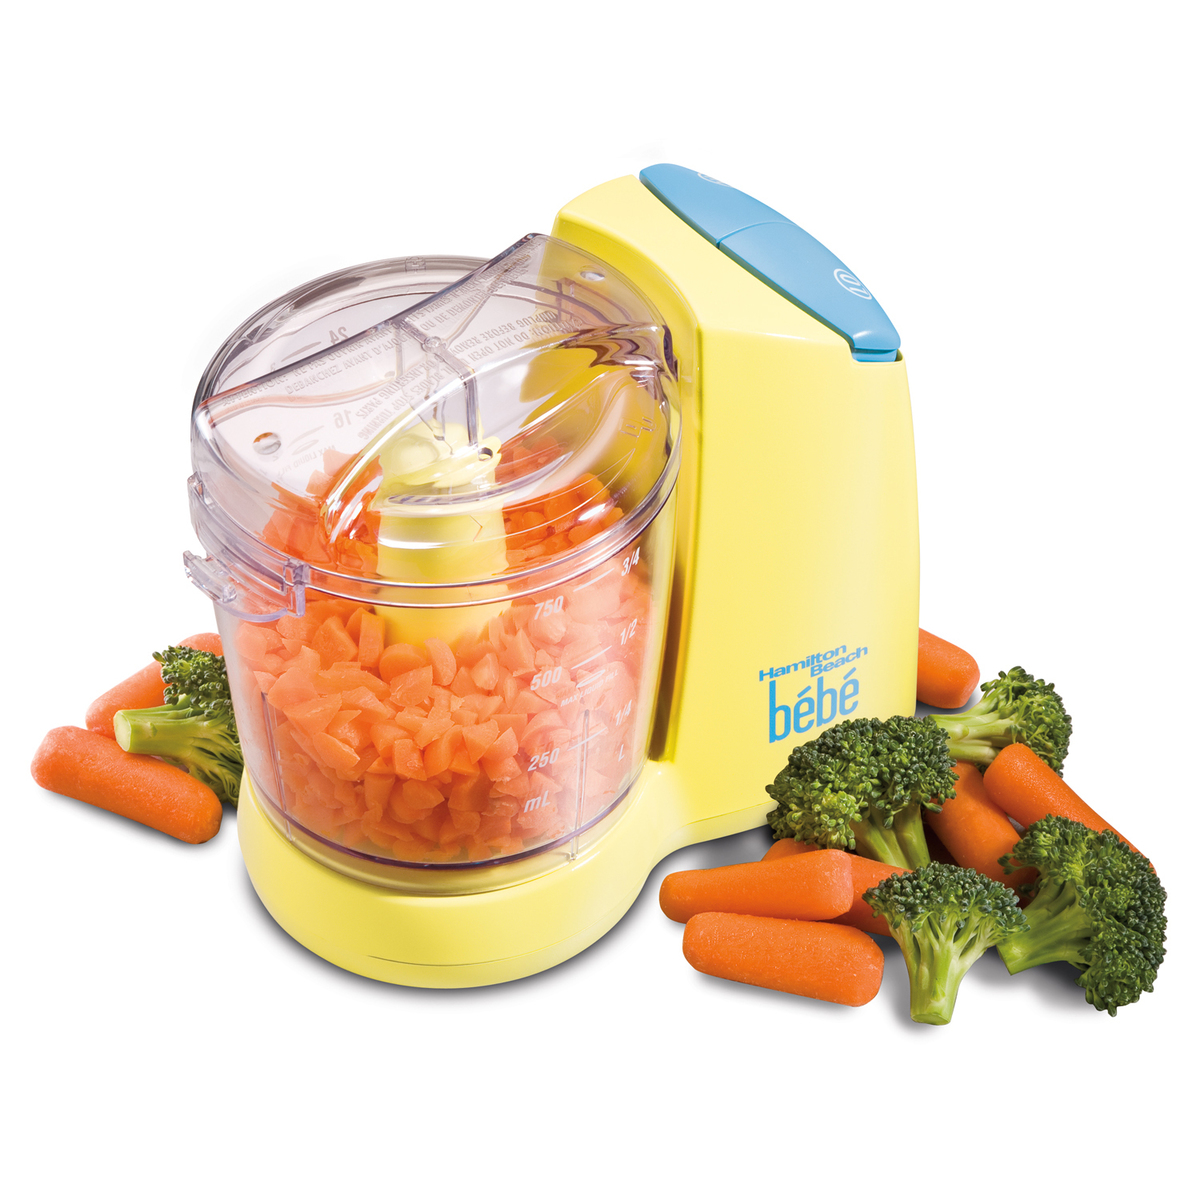 Bébé 3 Cup Food Chopper (72601)